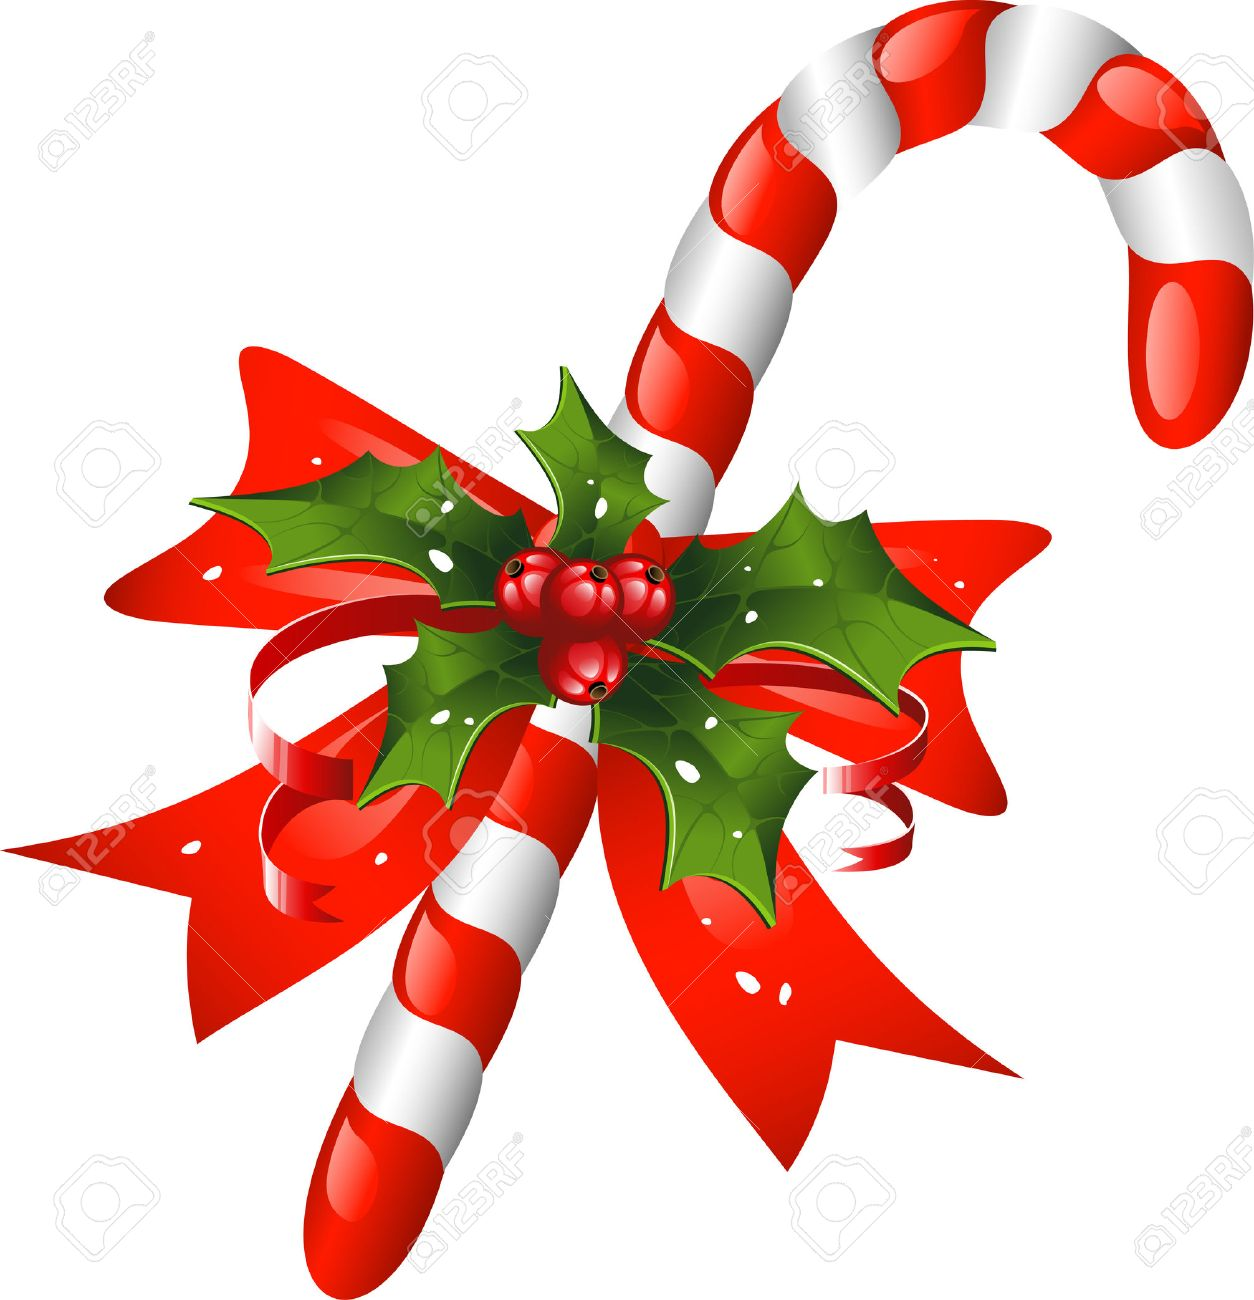 Christmas Candy Cane.Christmas Candy Cane Decorated With A Bow And Holly Over White